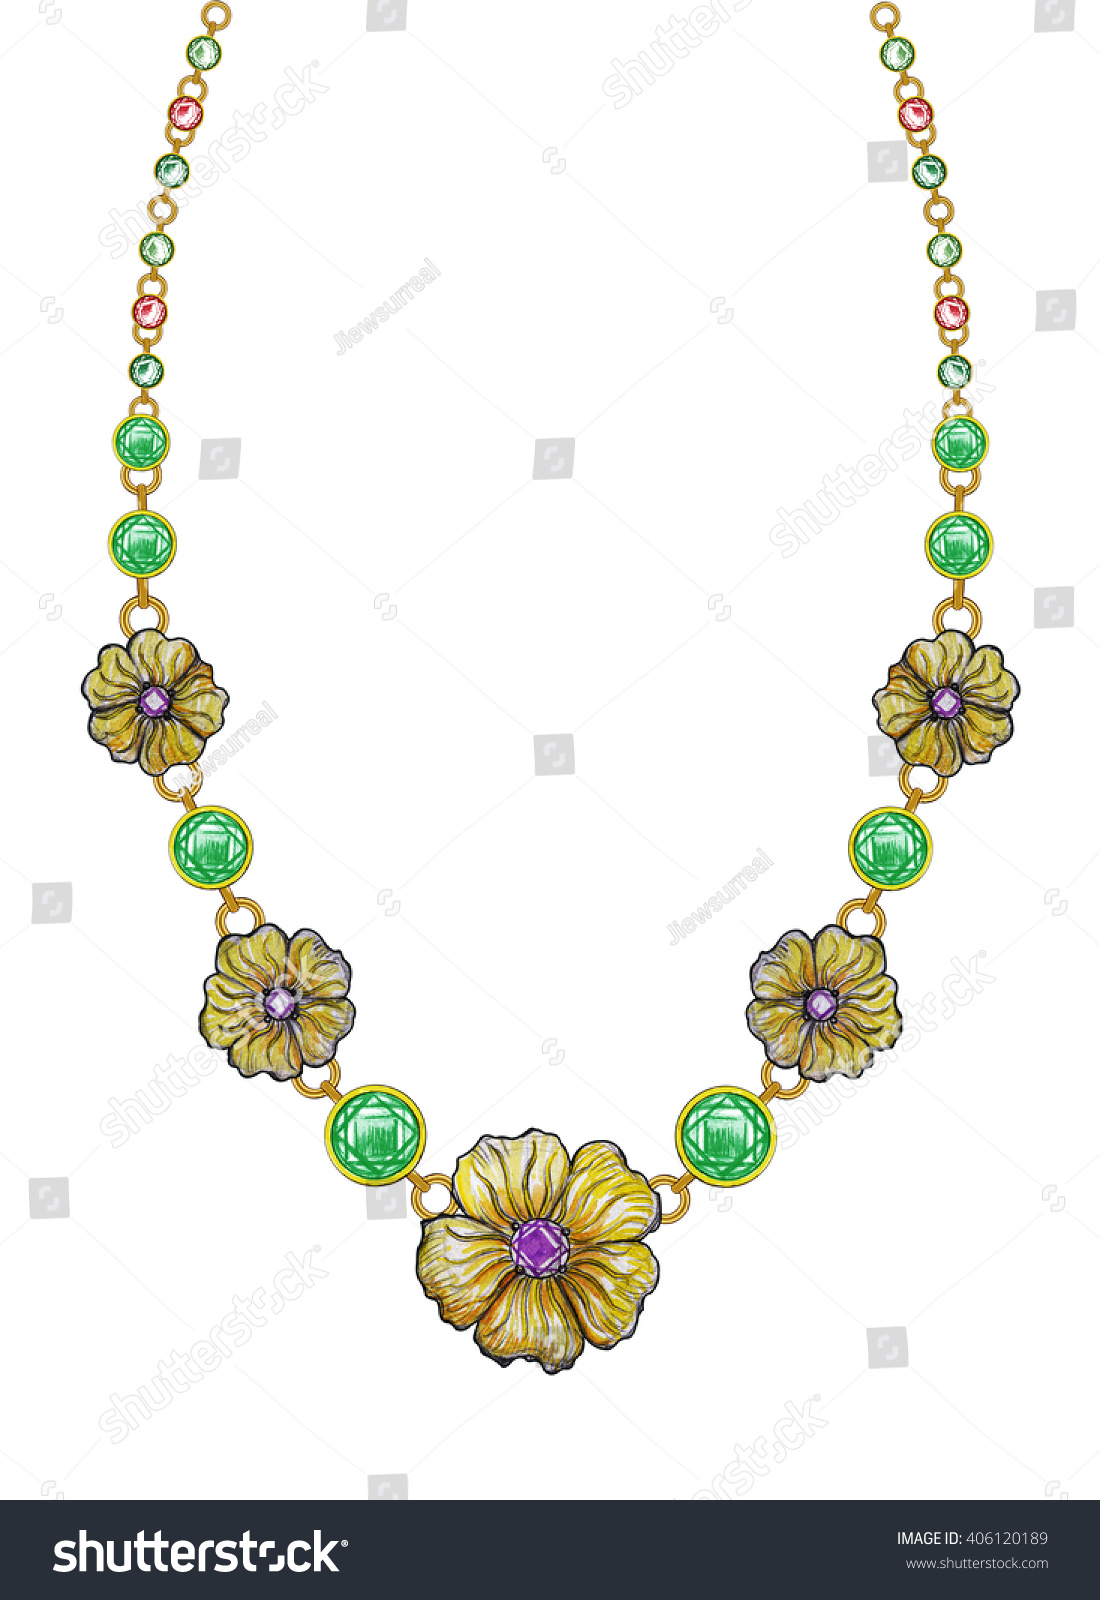 Jewelry Design Flowers Necklace Hand Pencil Stock ...